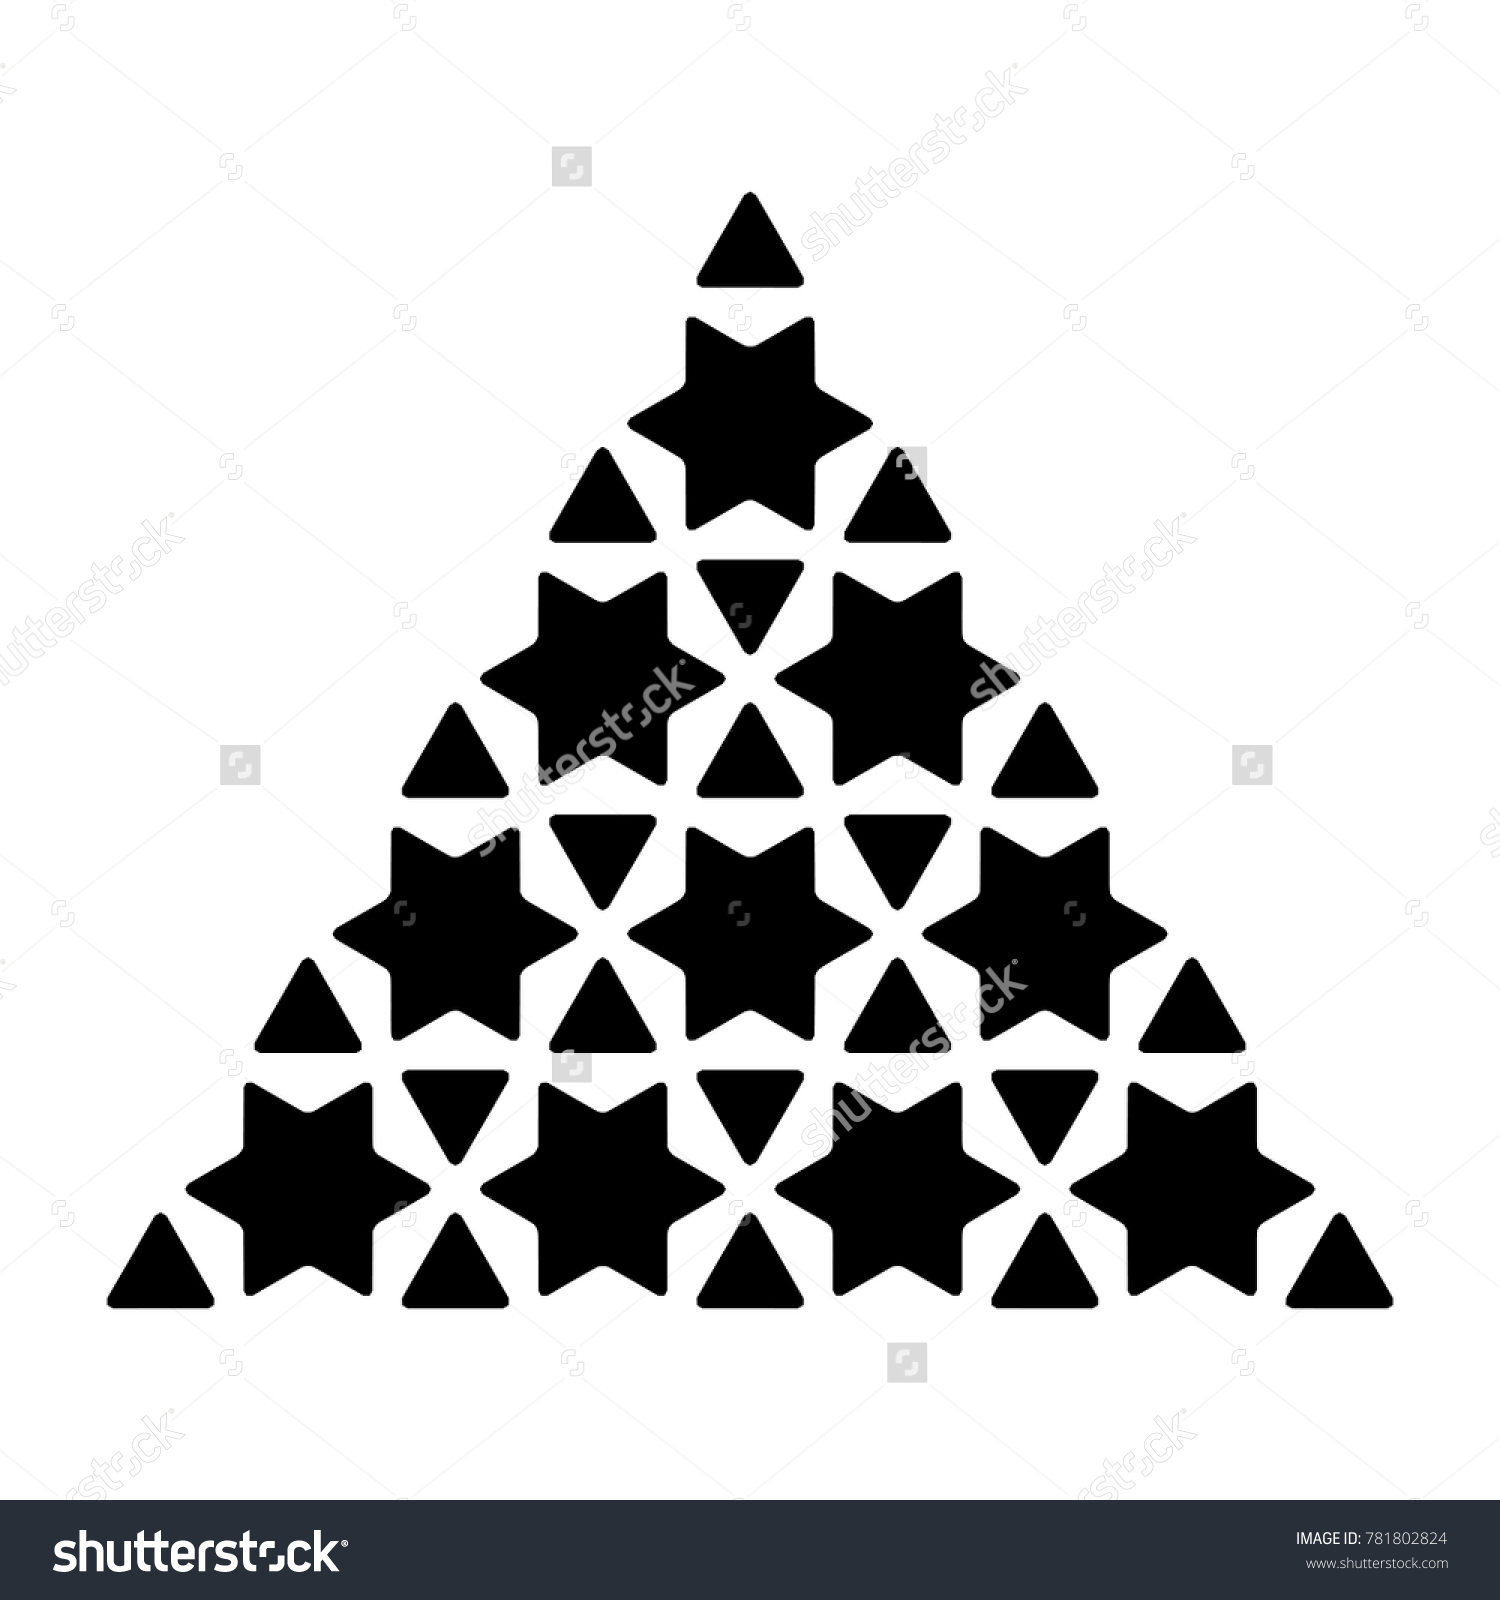 Islamic Star Based Shape Element Graphic Stock Vector (Royalty Free ...